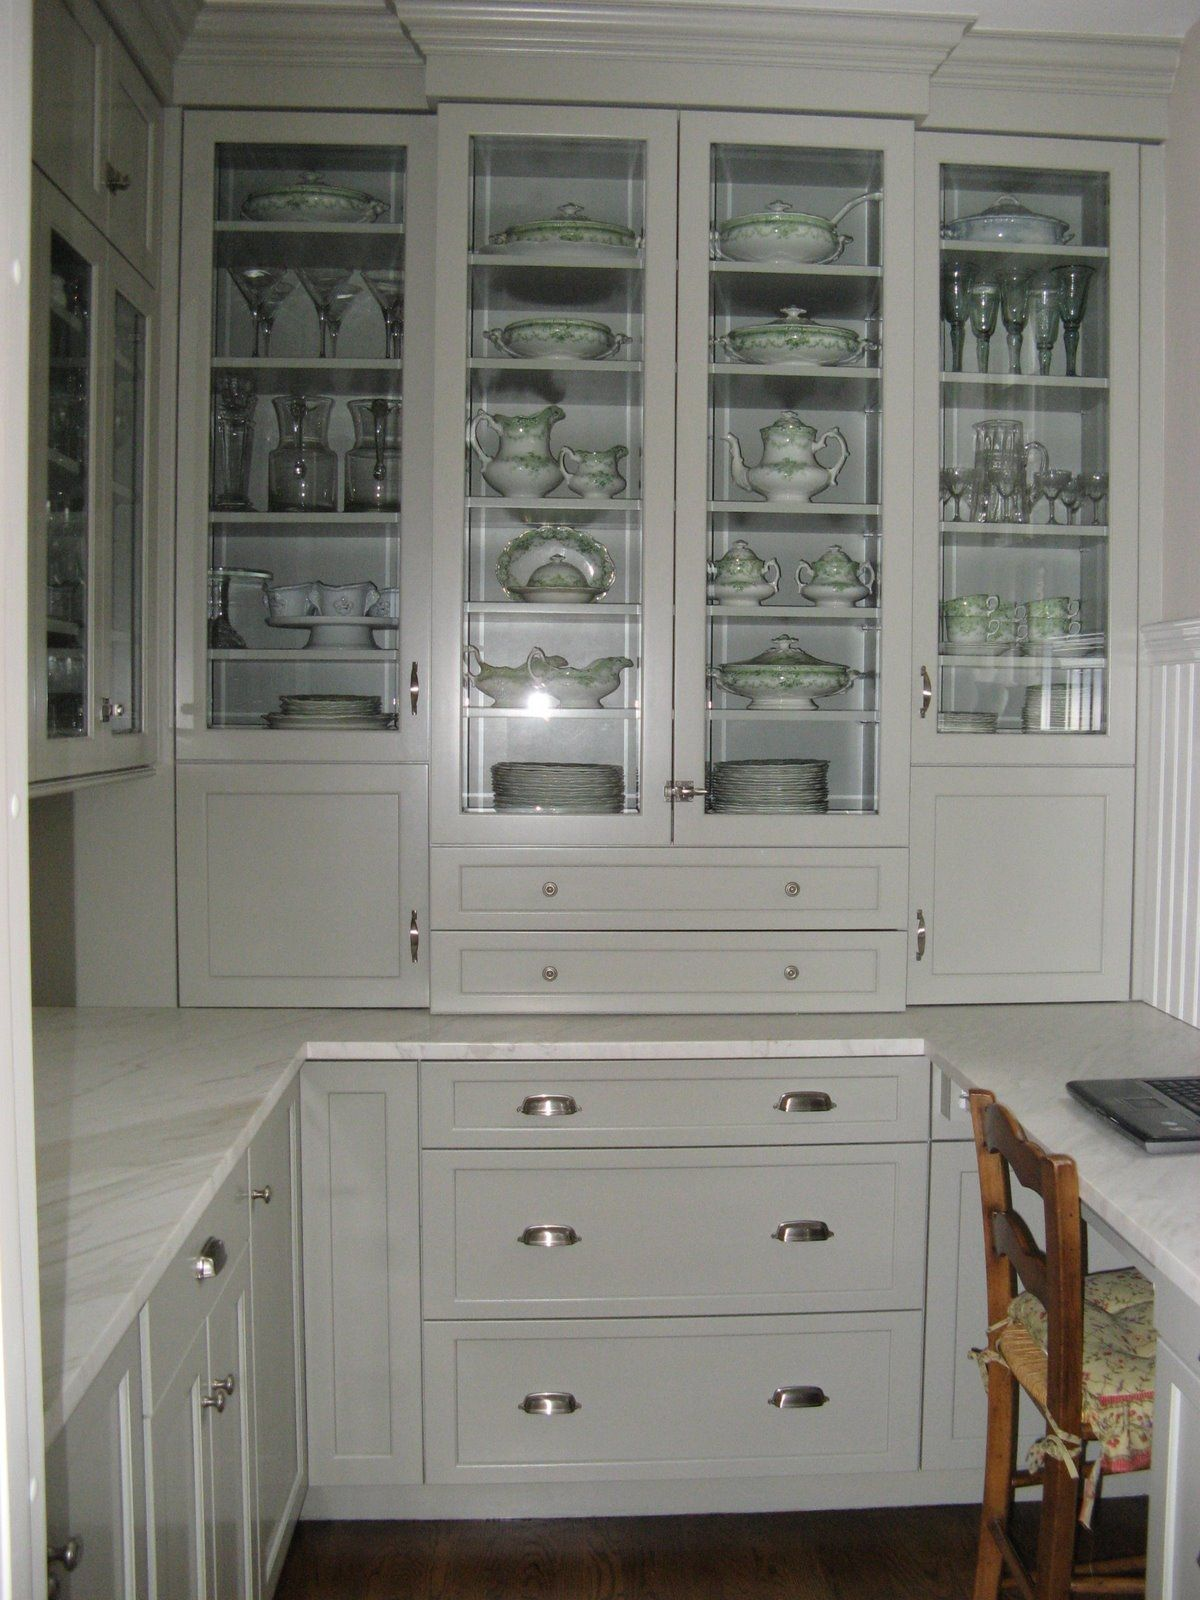 1000 images about kitchen on pinterest stains red oak and cabinets butler pantry design ideas